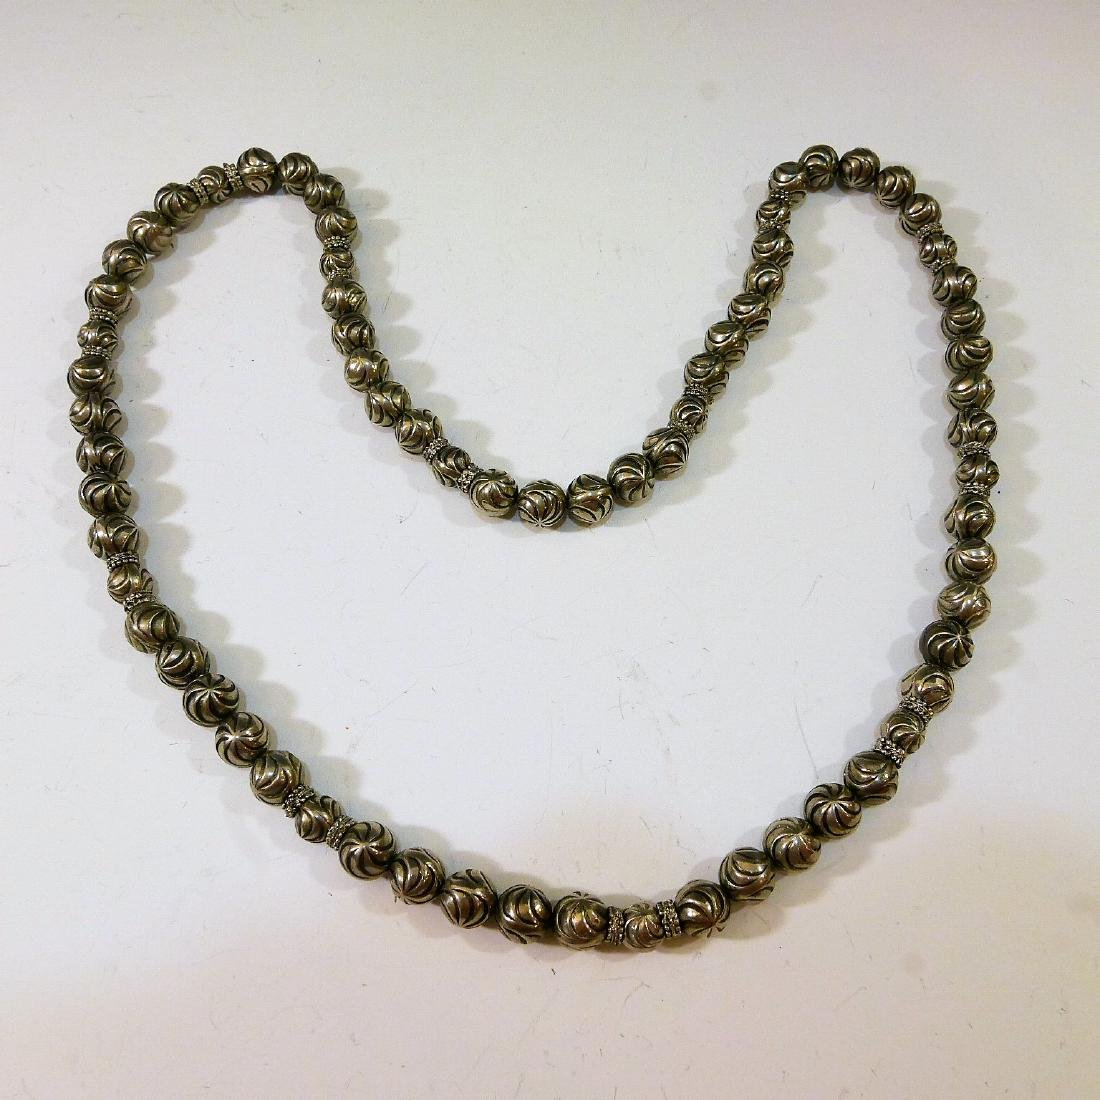 STERLING SILVER BEADS NECKLACE - 2